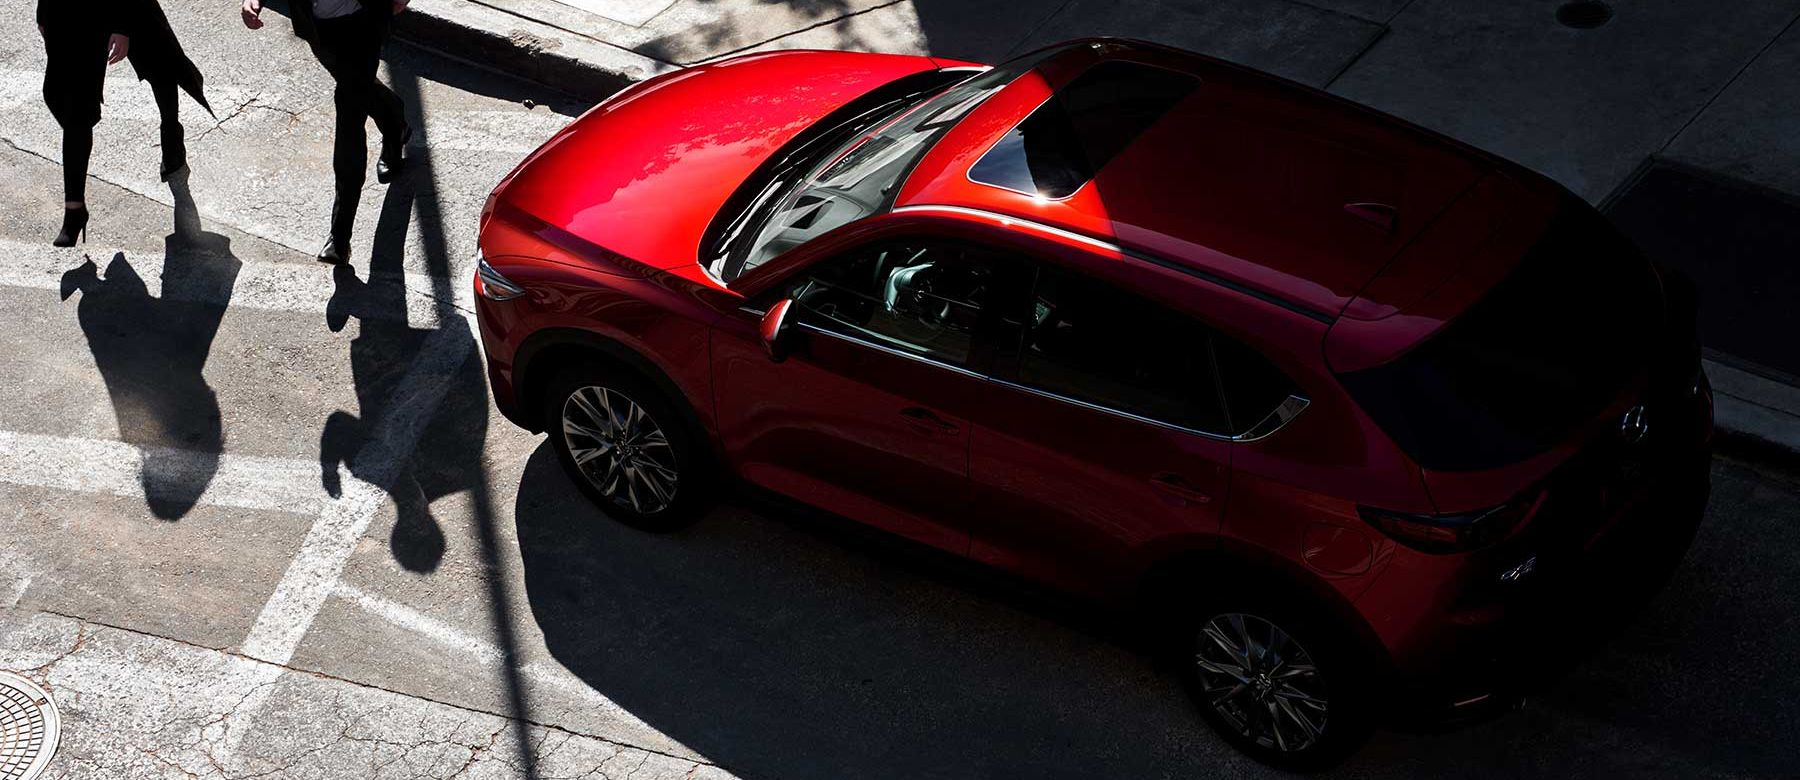 2019 Mazda CX-5 Financing in San Antonio, TX